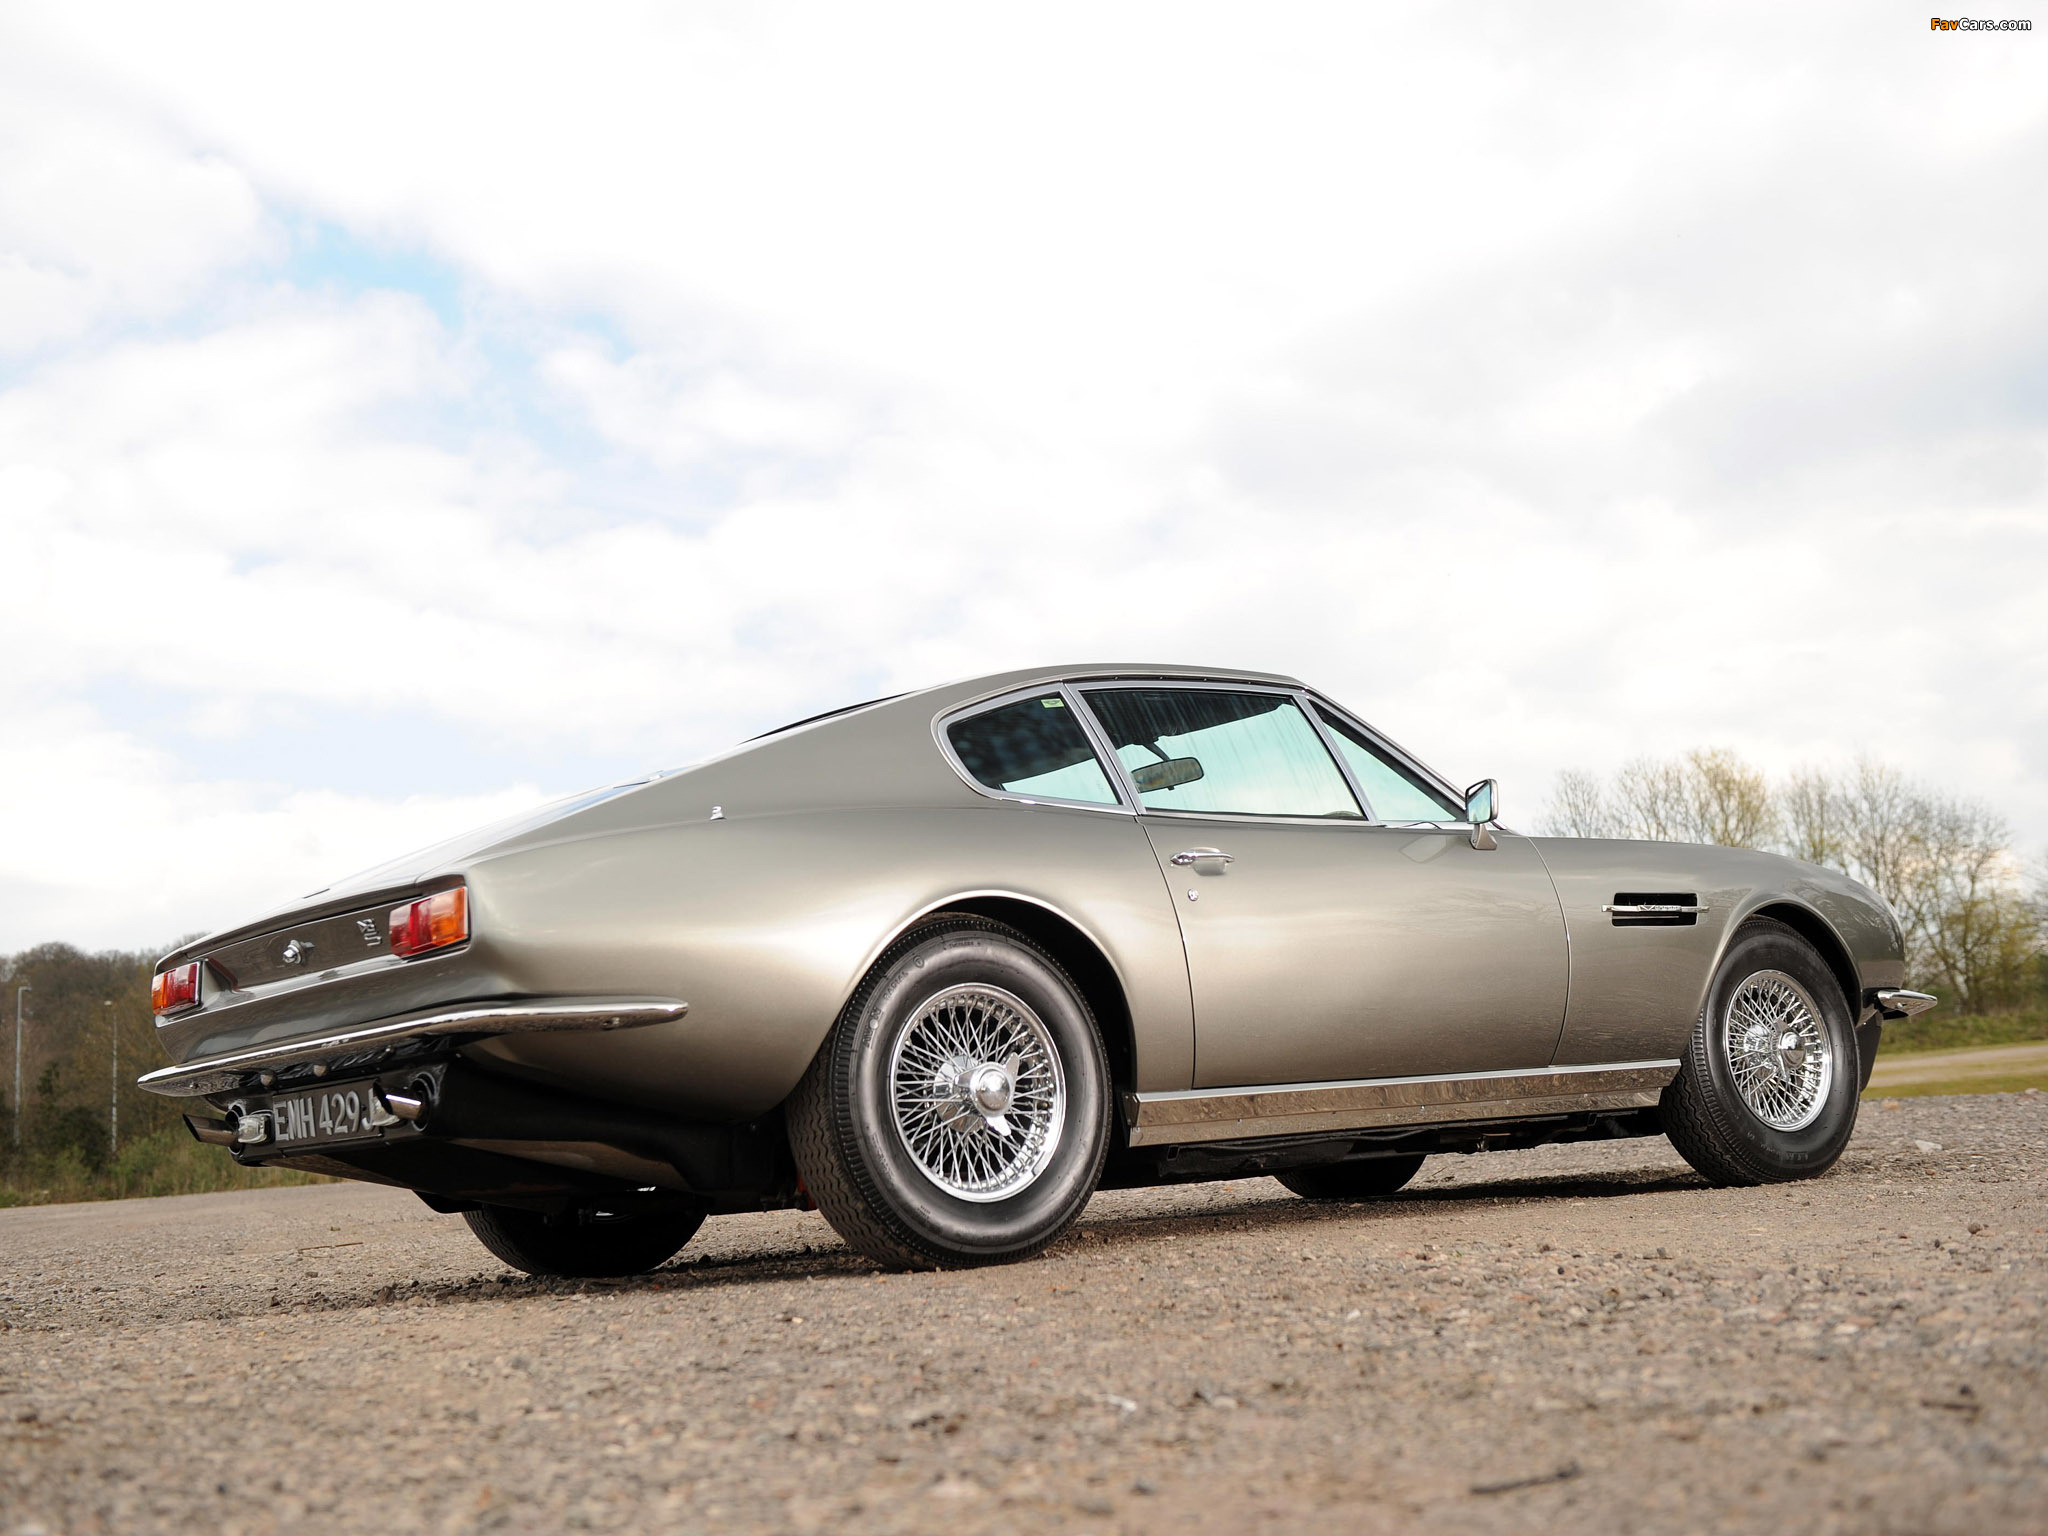 Aston Martin DB6 model 2417 additionally 1970 Dodge Challenger R T 82f2e8698110f822 additionally Cars in addition 4492 Forza Horizon 3 Weitere Fahrzeuge Enthuellt Bilder further Classic Aston Martin Dbs Cars For Sale Classic And Performance Car Old Aston Martin Vanquish. on 1970 aston martin v8 vantage